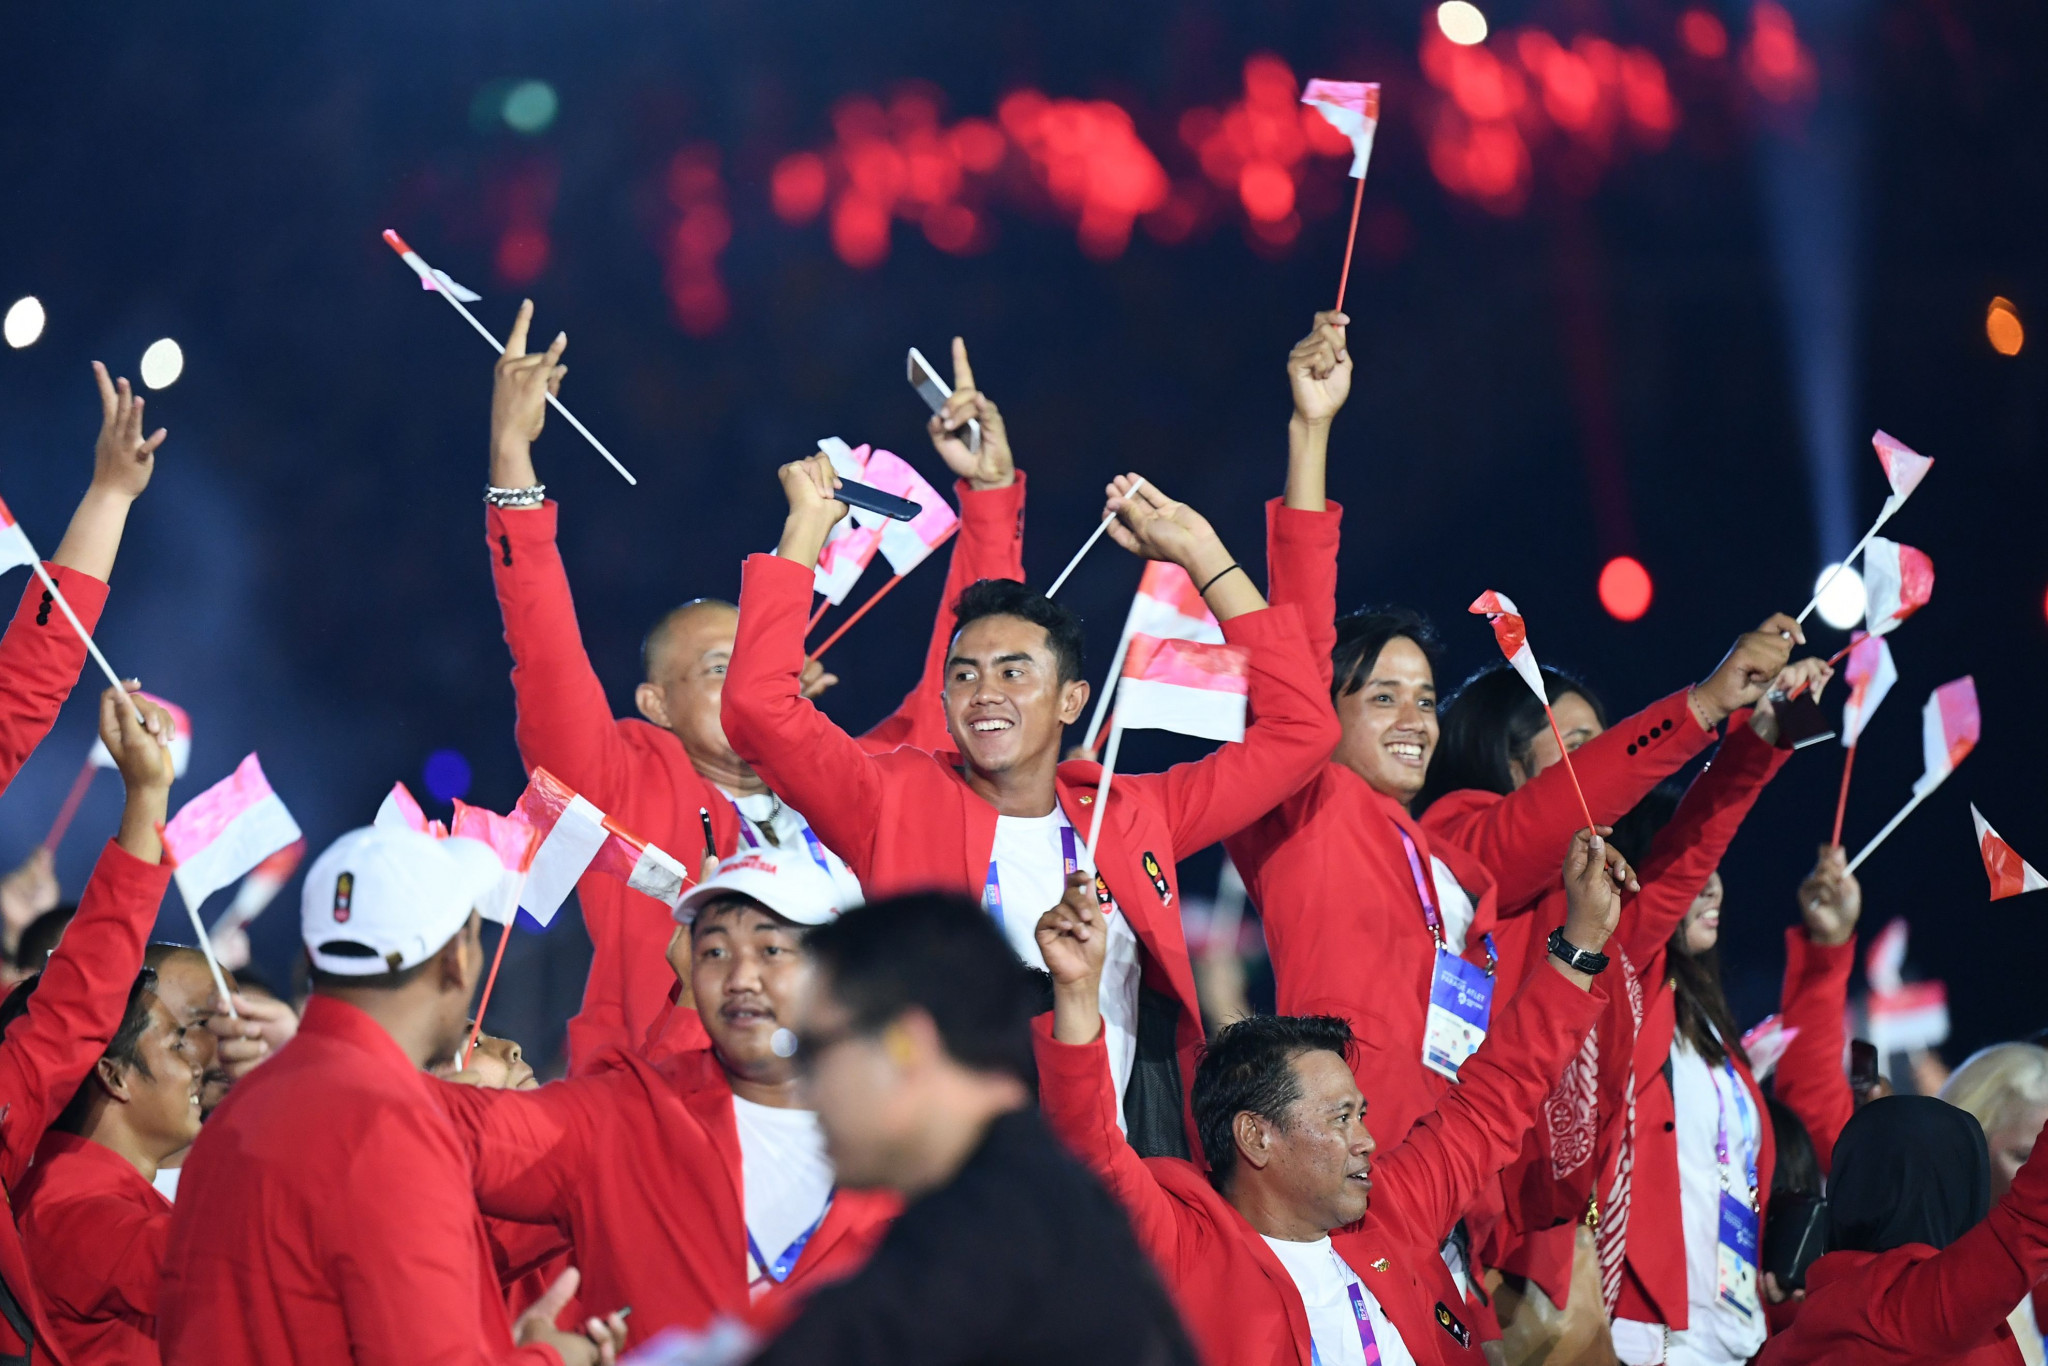 Hosts Indonesia arrived into the stadium to huge cheers, chanting and red and white lights ©Getty Images